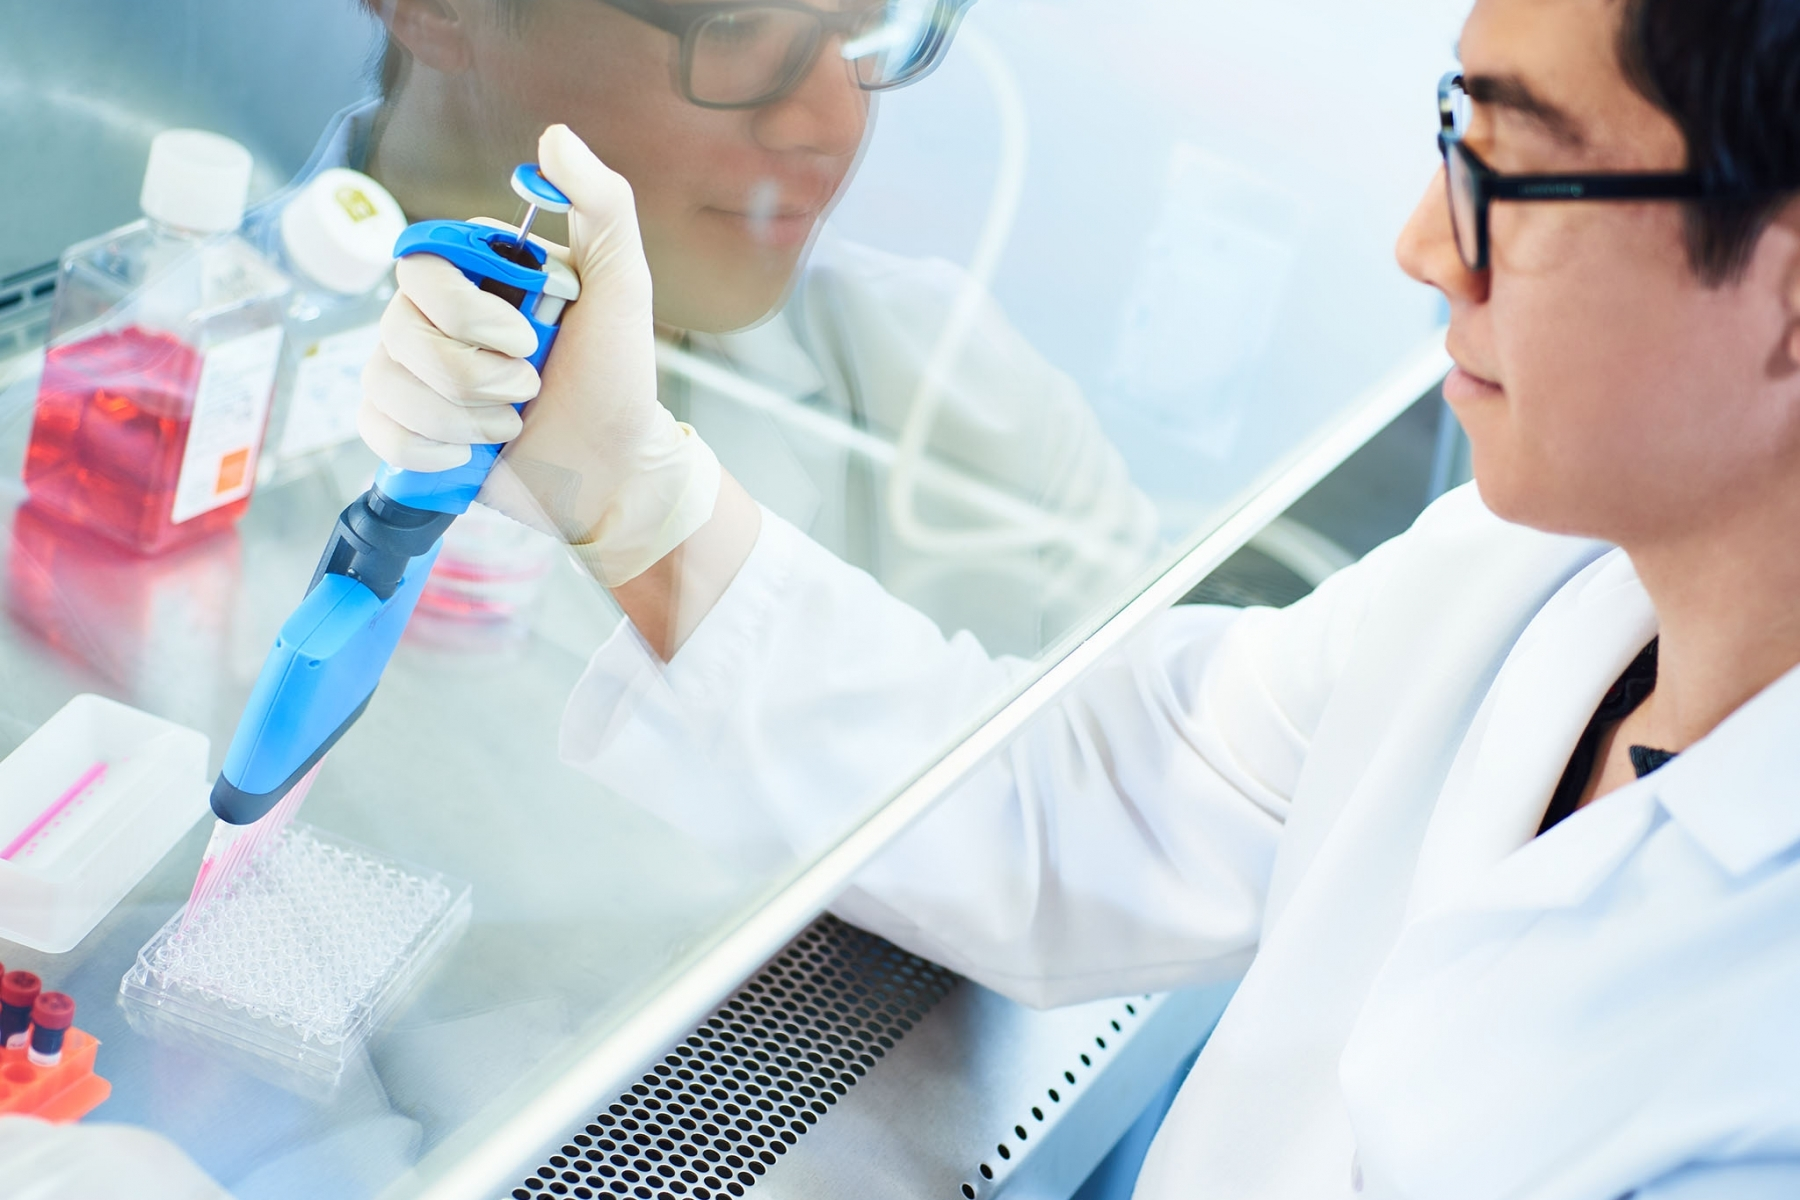 Pipetting under the hood